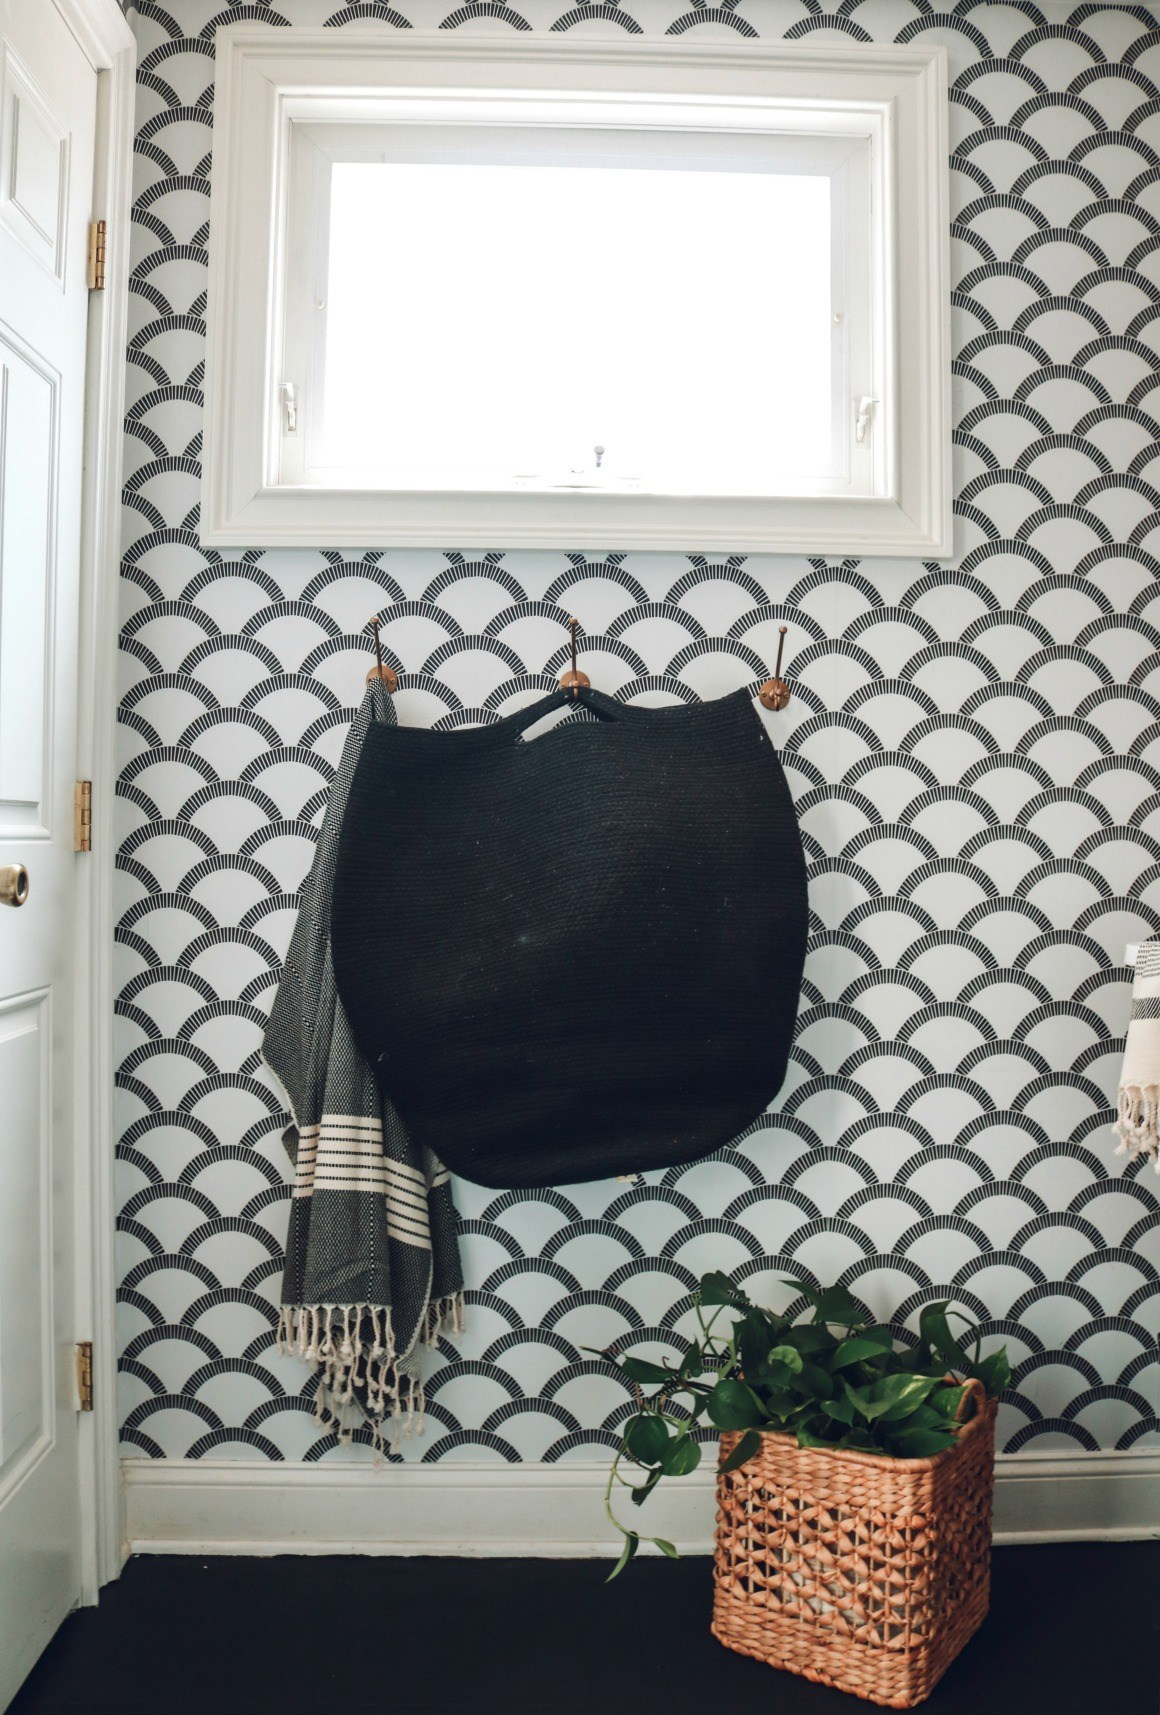 Nesting with Grace Removable Wallpaper with Tempaper